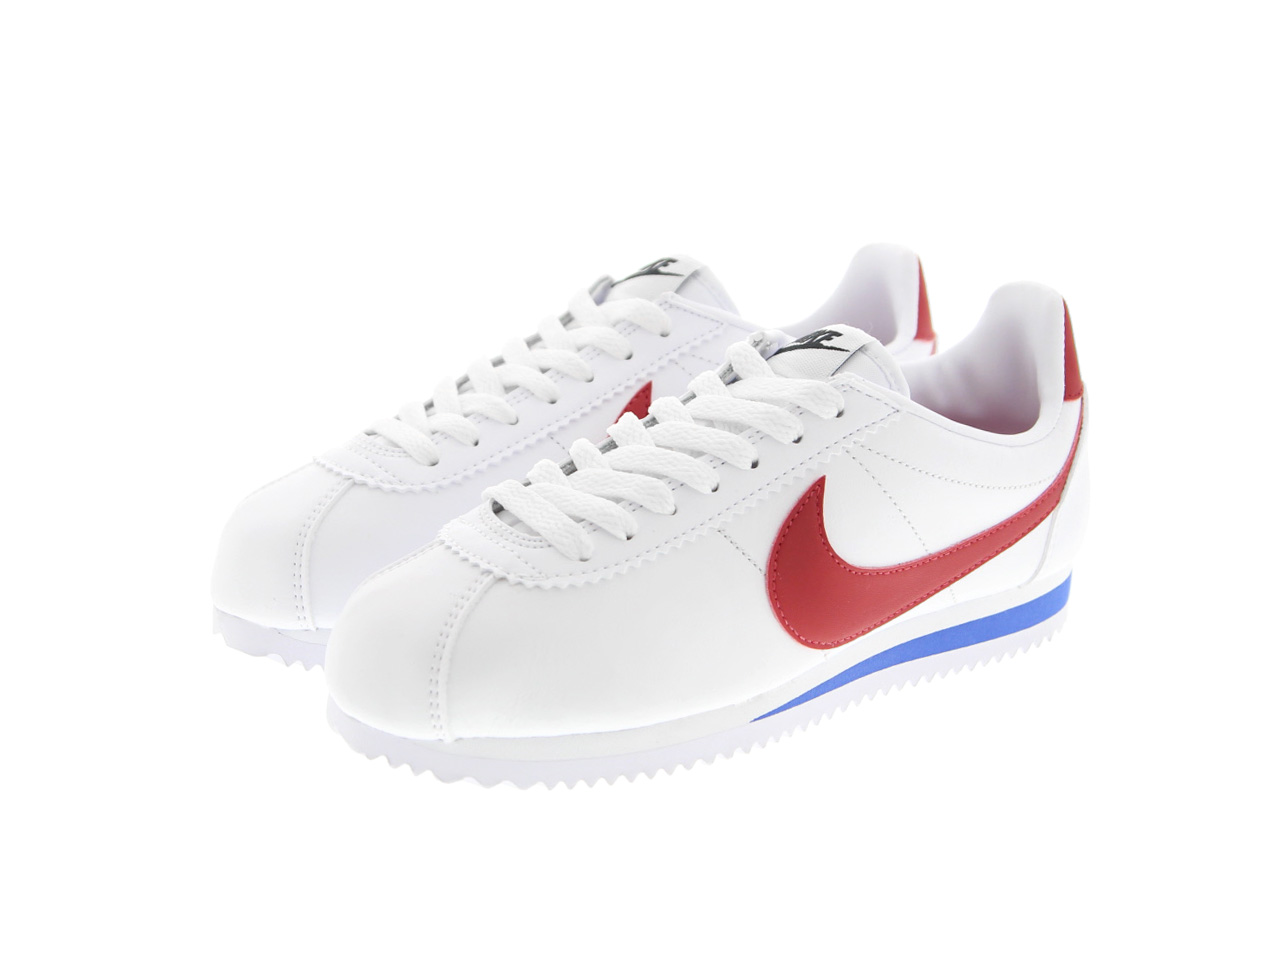 NIKE WMNS CLASSIC CORTEZ LEATHER(807471-103)白/酒吧城红/酒吧城皇家